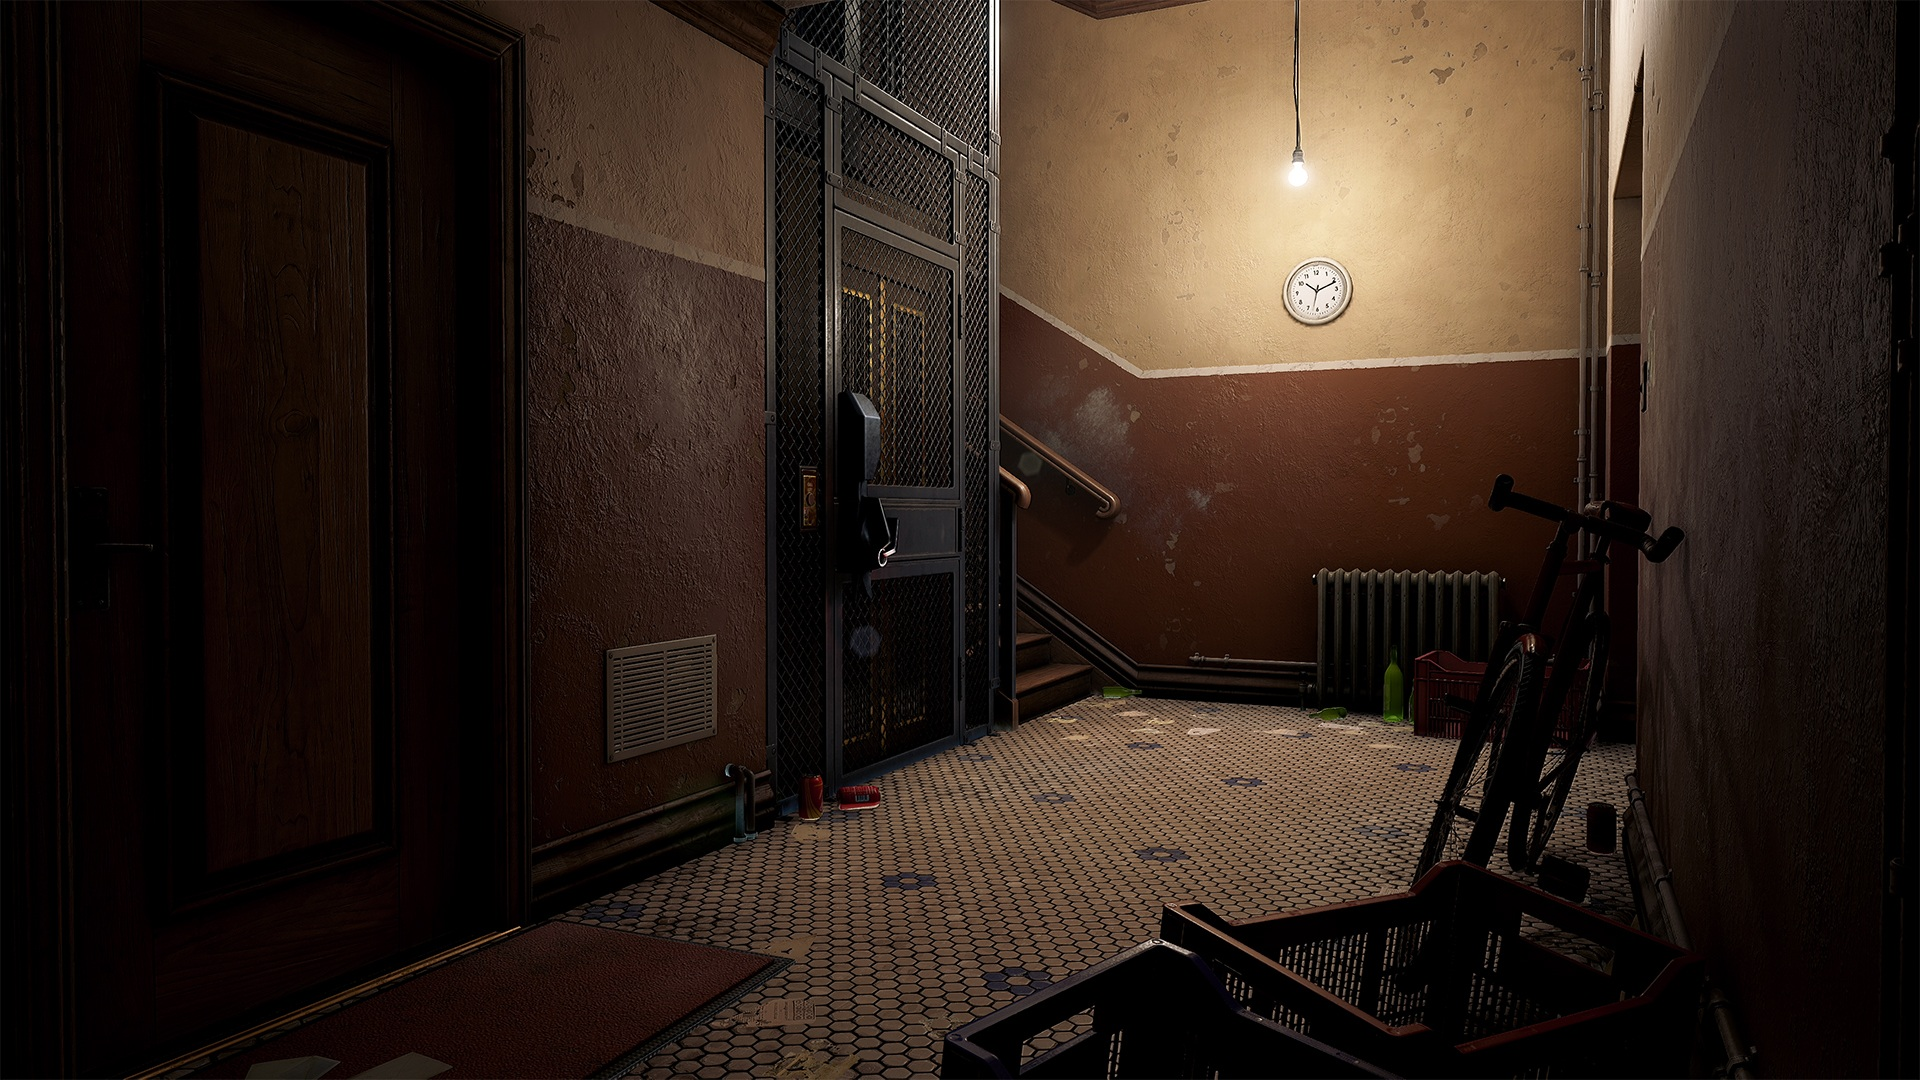 Half Life 2's City 17 Apartment In Unreal Engine 4 Will Be Available